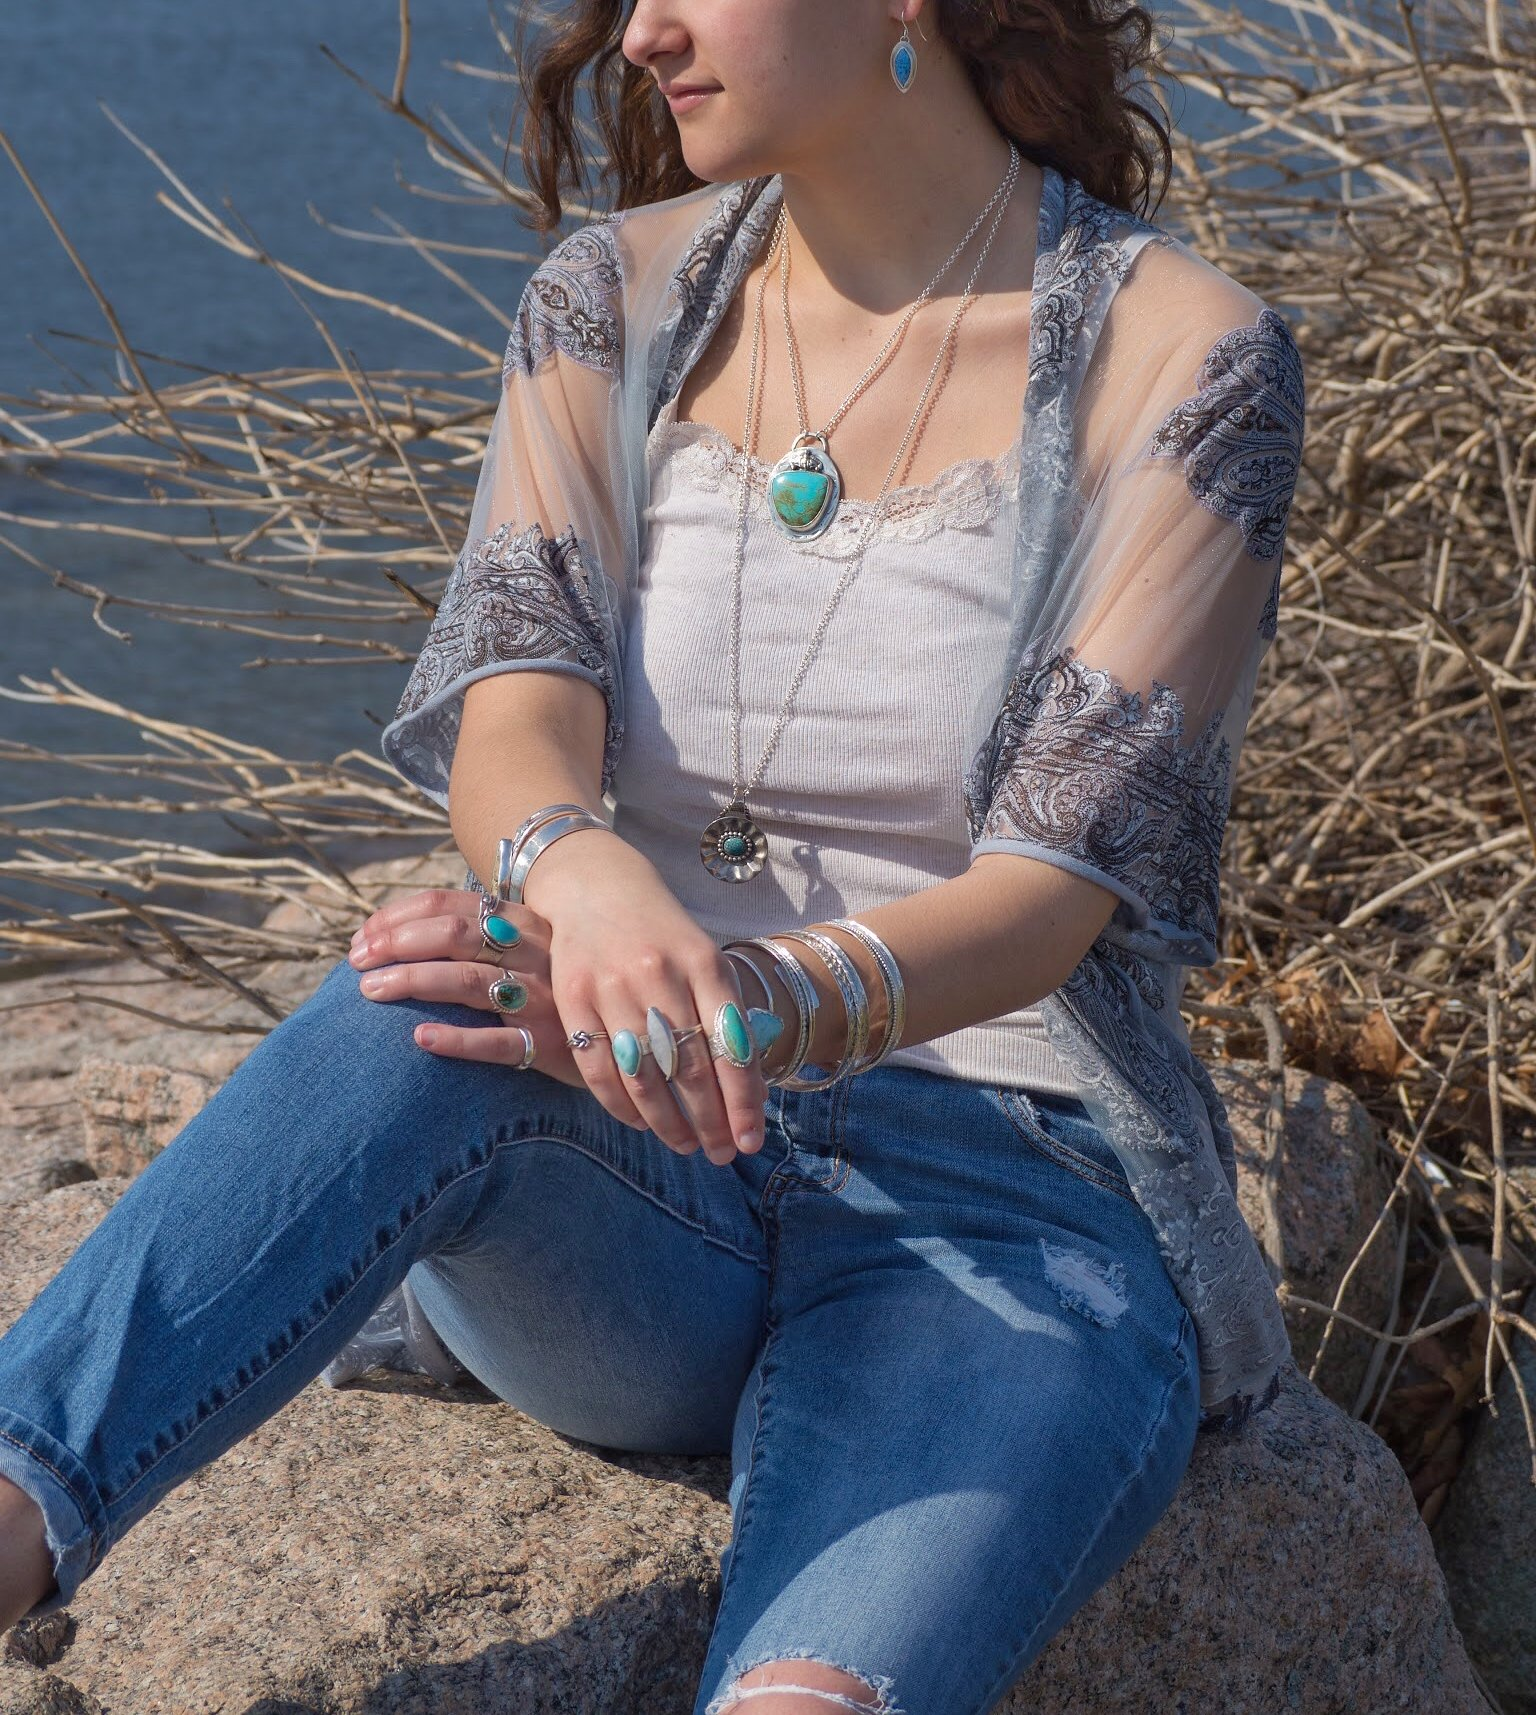 Jewelry styles by Silver Spiral Creations